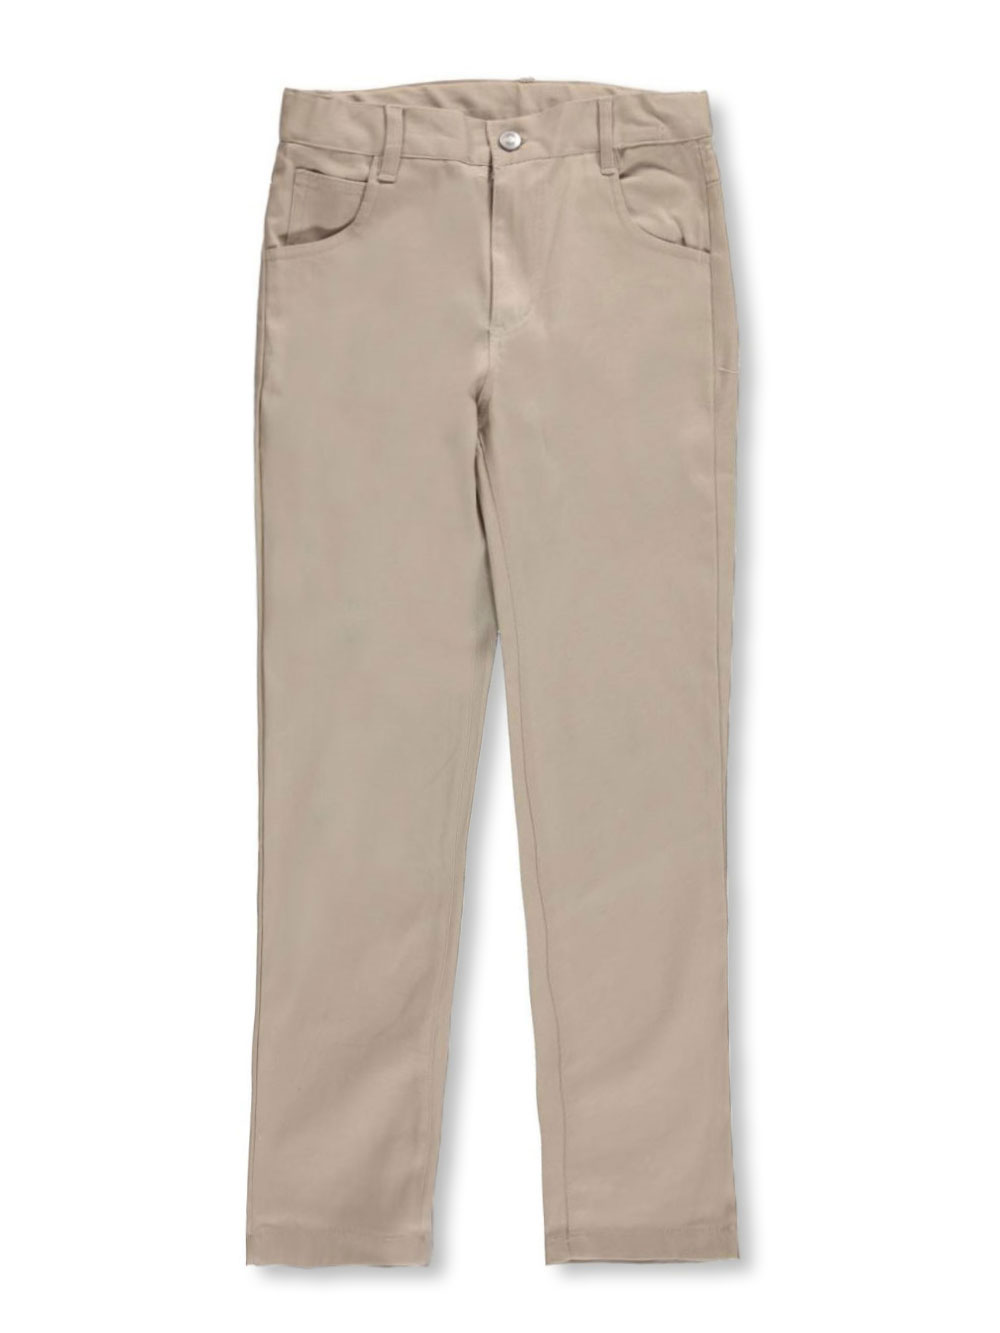 Image of Denice Stretch Big Girls Jean Pocket Skinny Uniform Pants Sizes 7  16  khaki 7